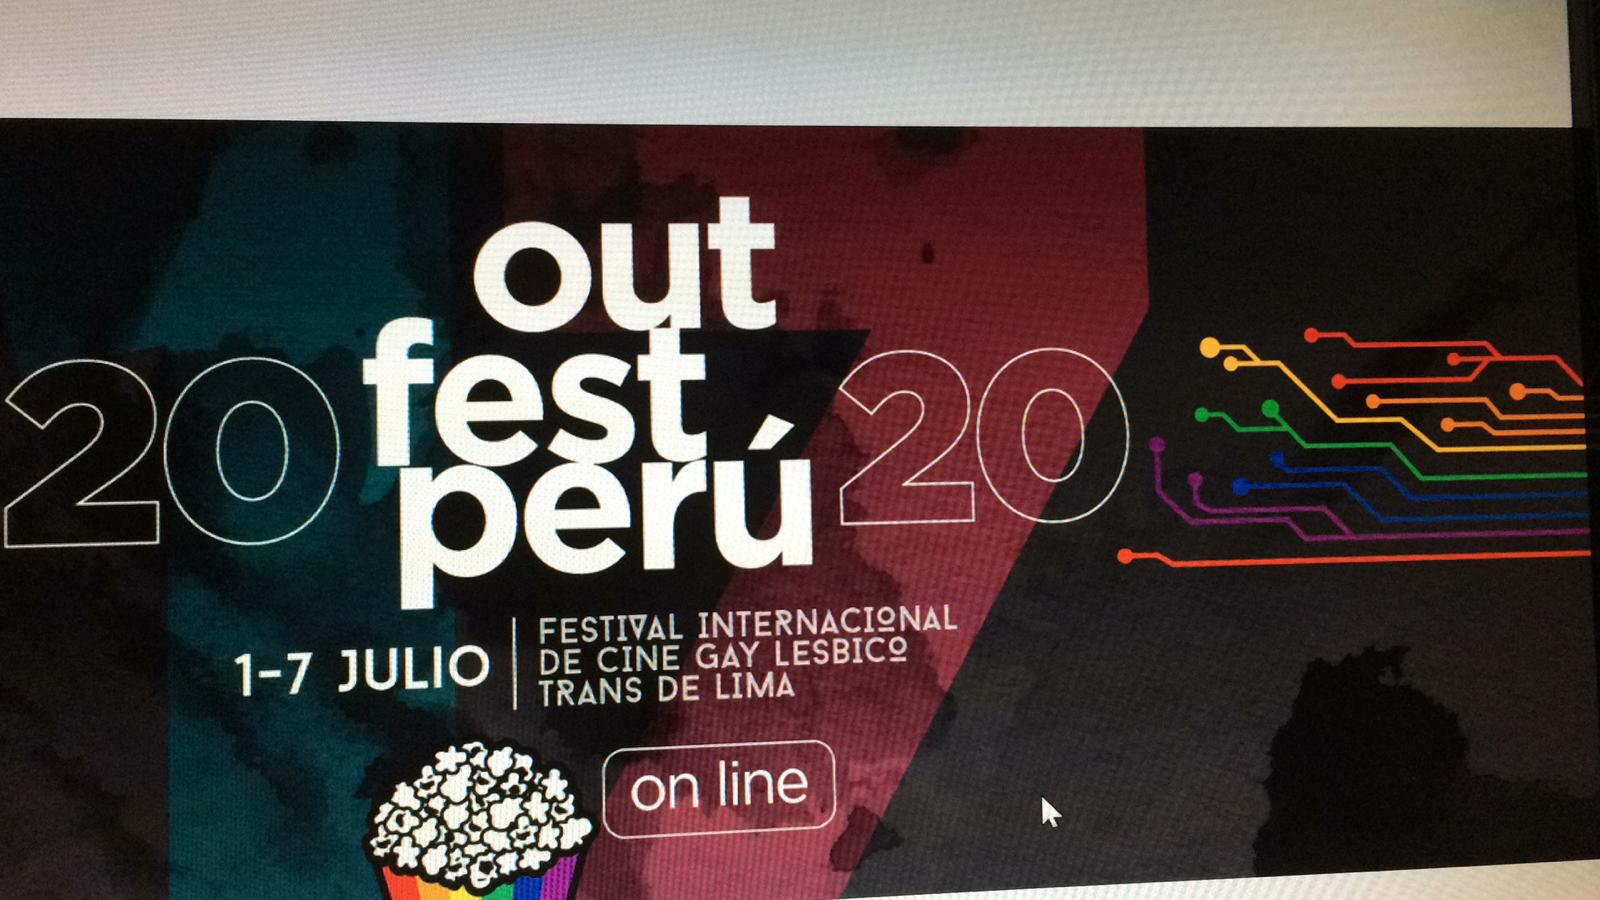 Outfest Perú 2020